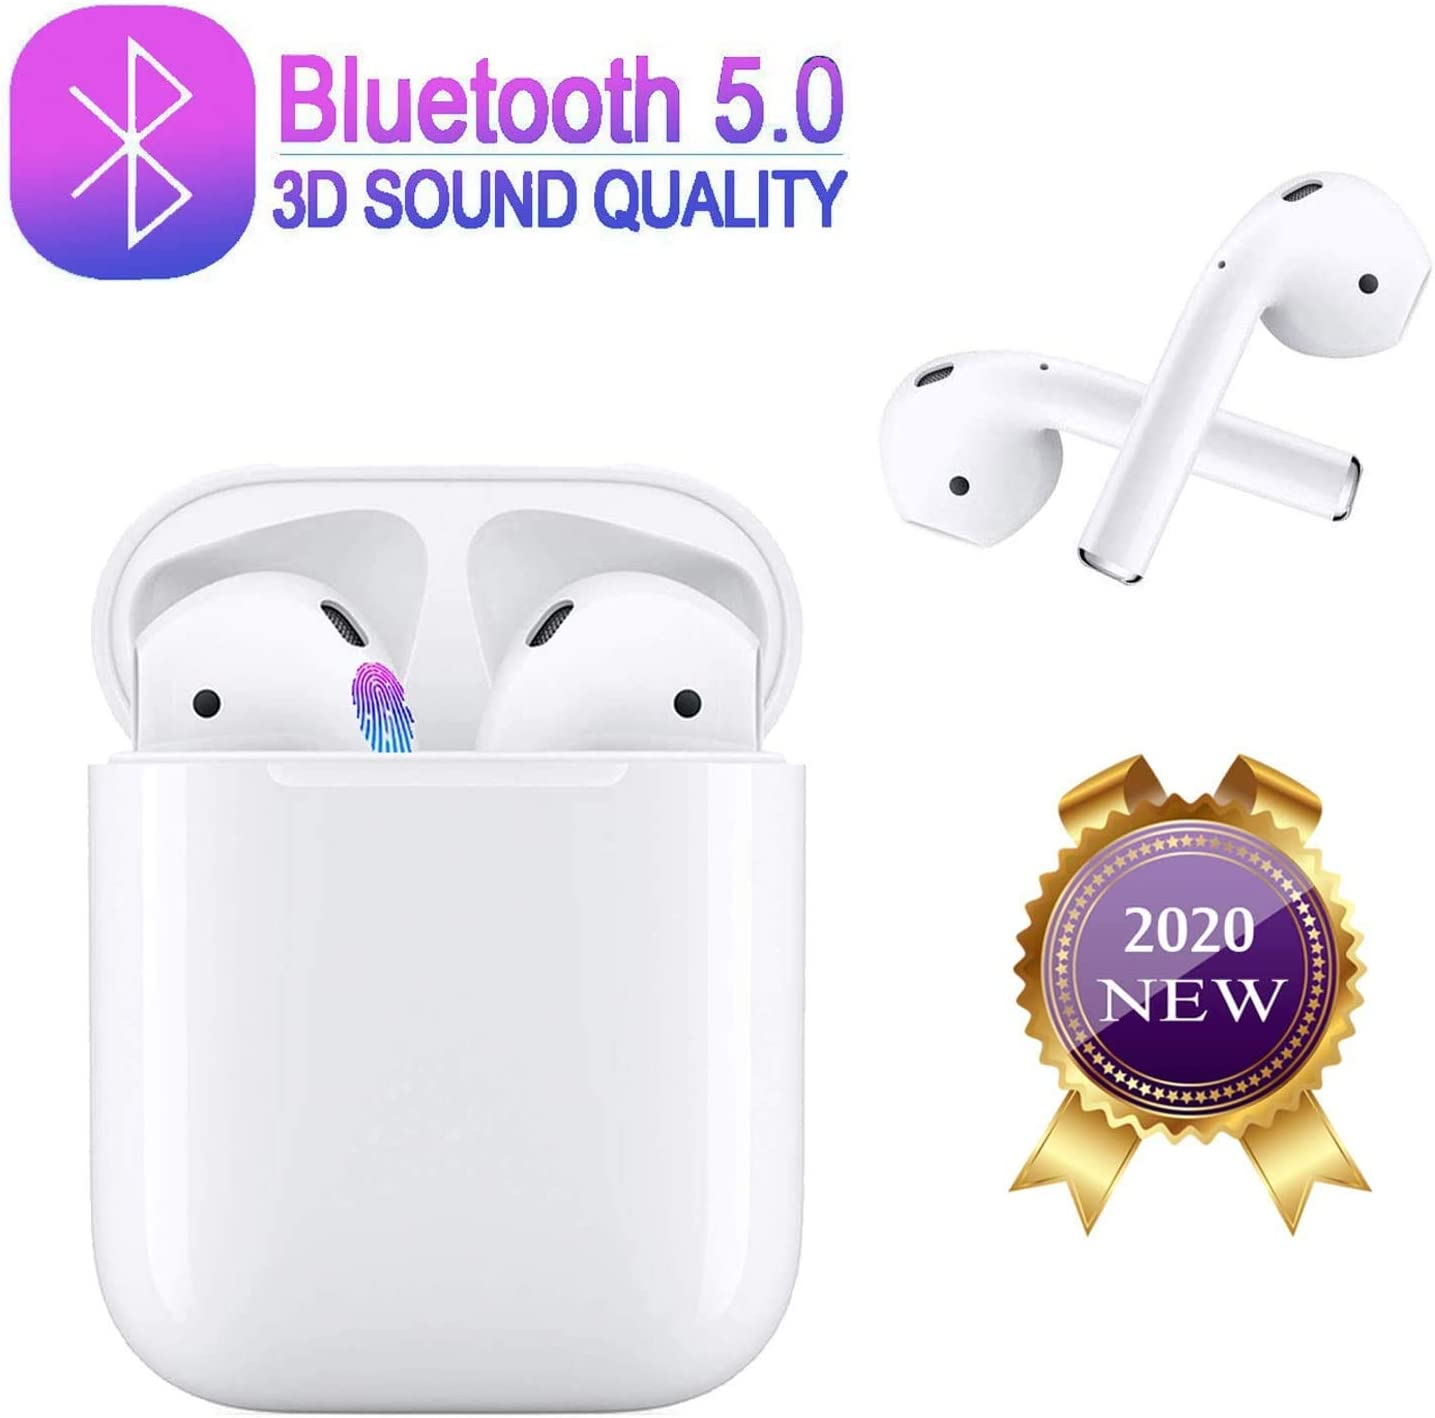 Bluetooth 5.0 Wireless Earbuds Headsets Bluetooth Headphones 24Hrs Charging Case 3D Stereo IPX5 Waterproof Pop-ups Auto Pairing Fast Charging for Earphone Samsung iOS Android Huawei Sport Earbuds